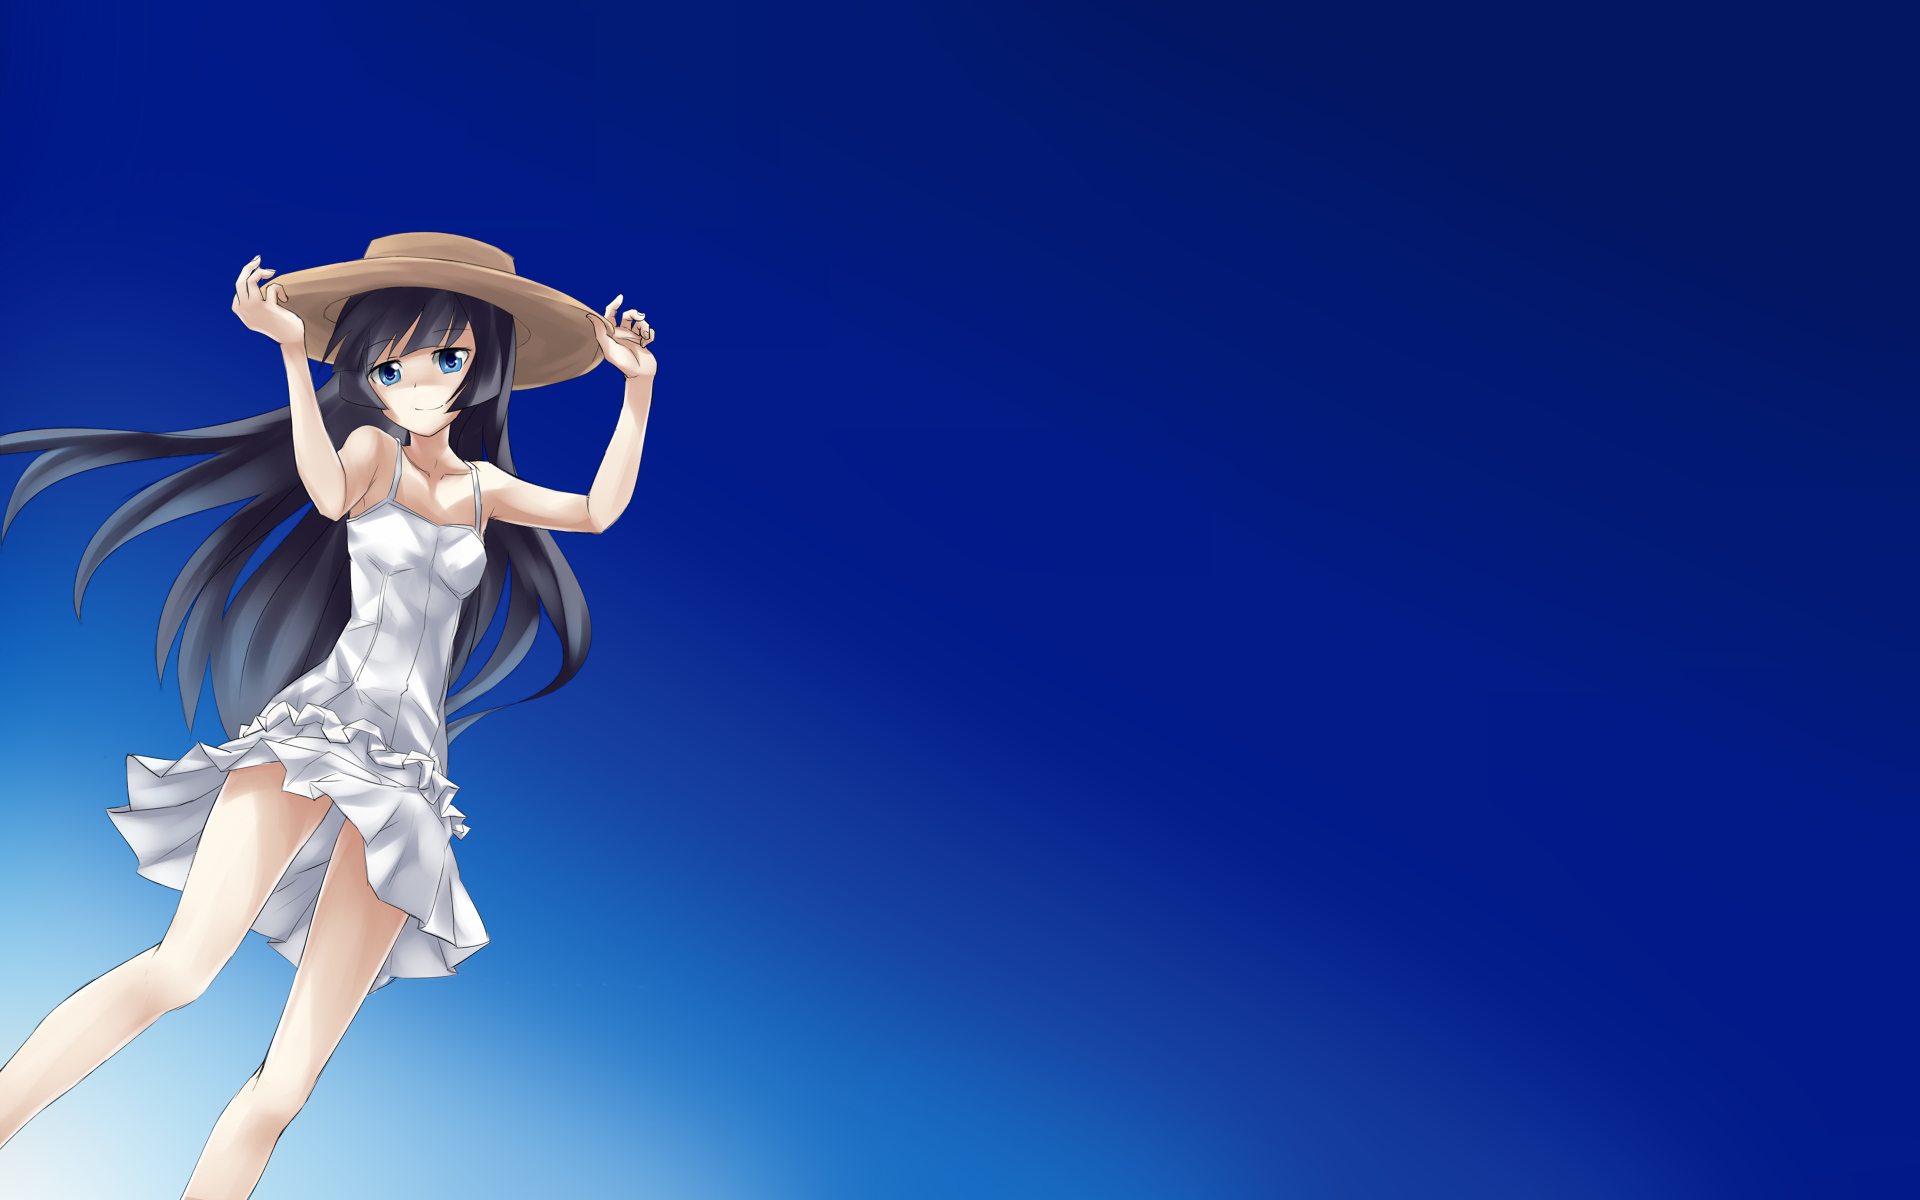 black_hair blue_eyes dress gokou_ruri gradient hat keikotsu long_hair ore_no_imouto_ga_konna_ni_kawaii_wake_ga_nai sky